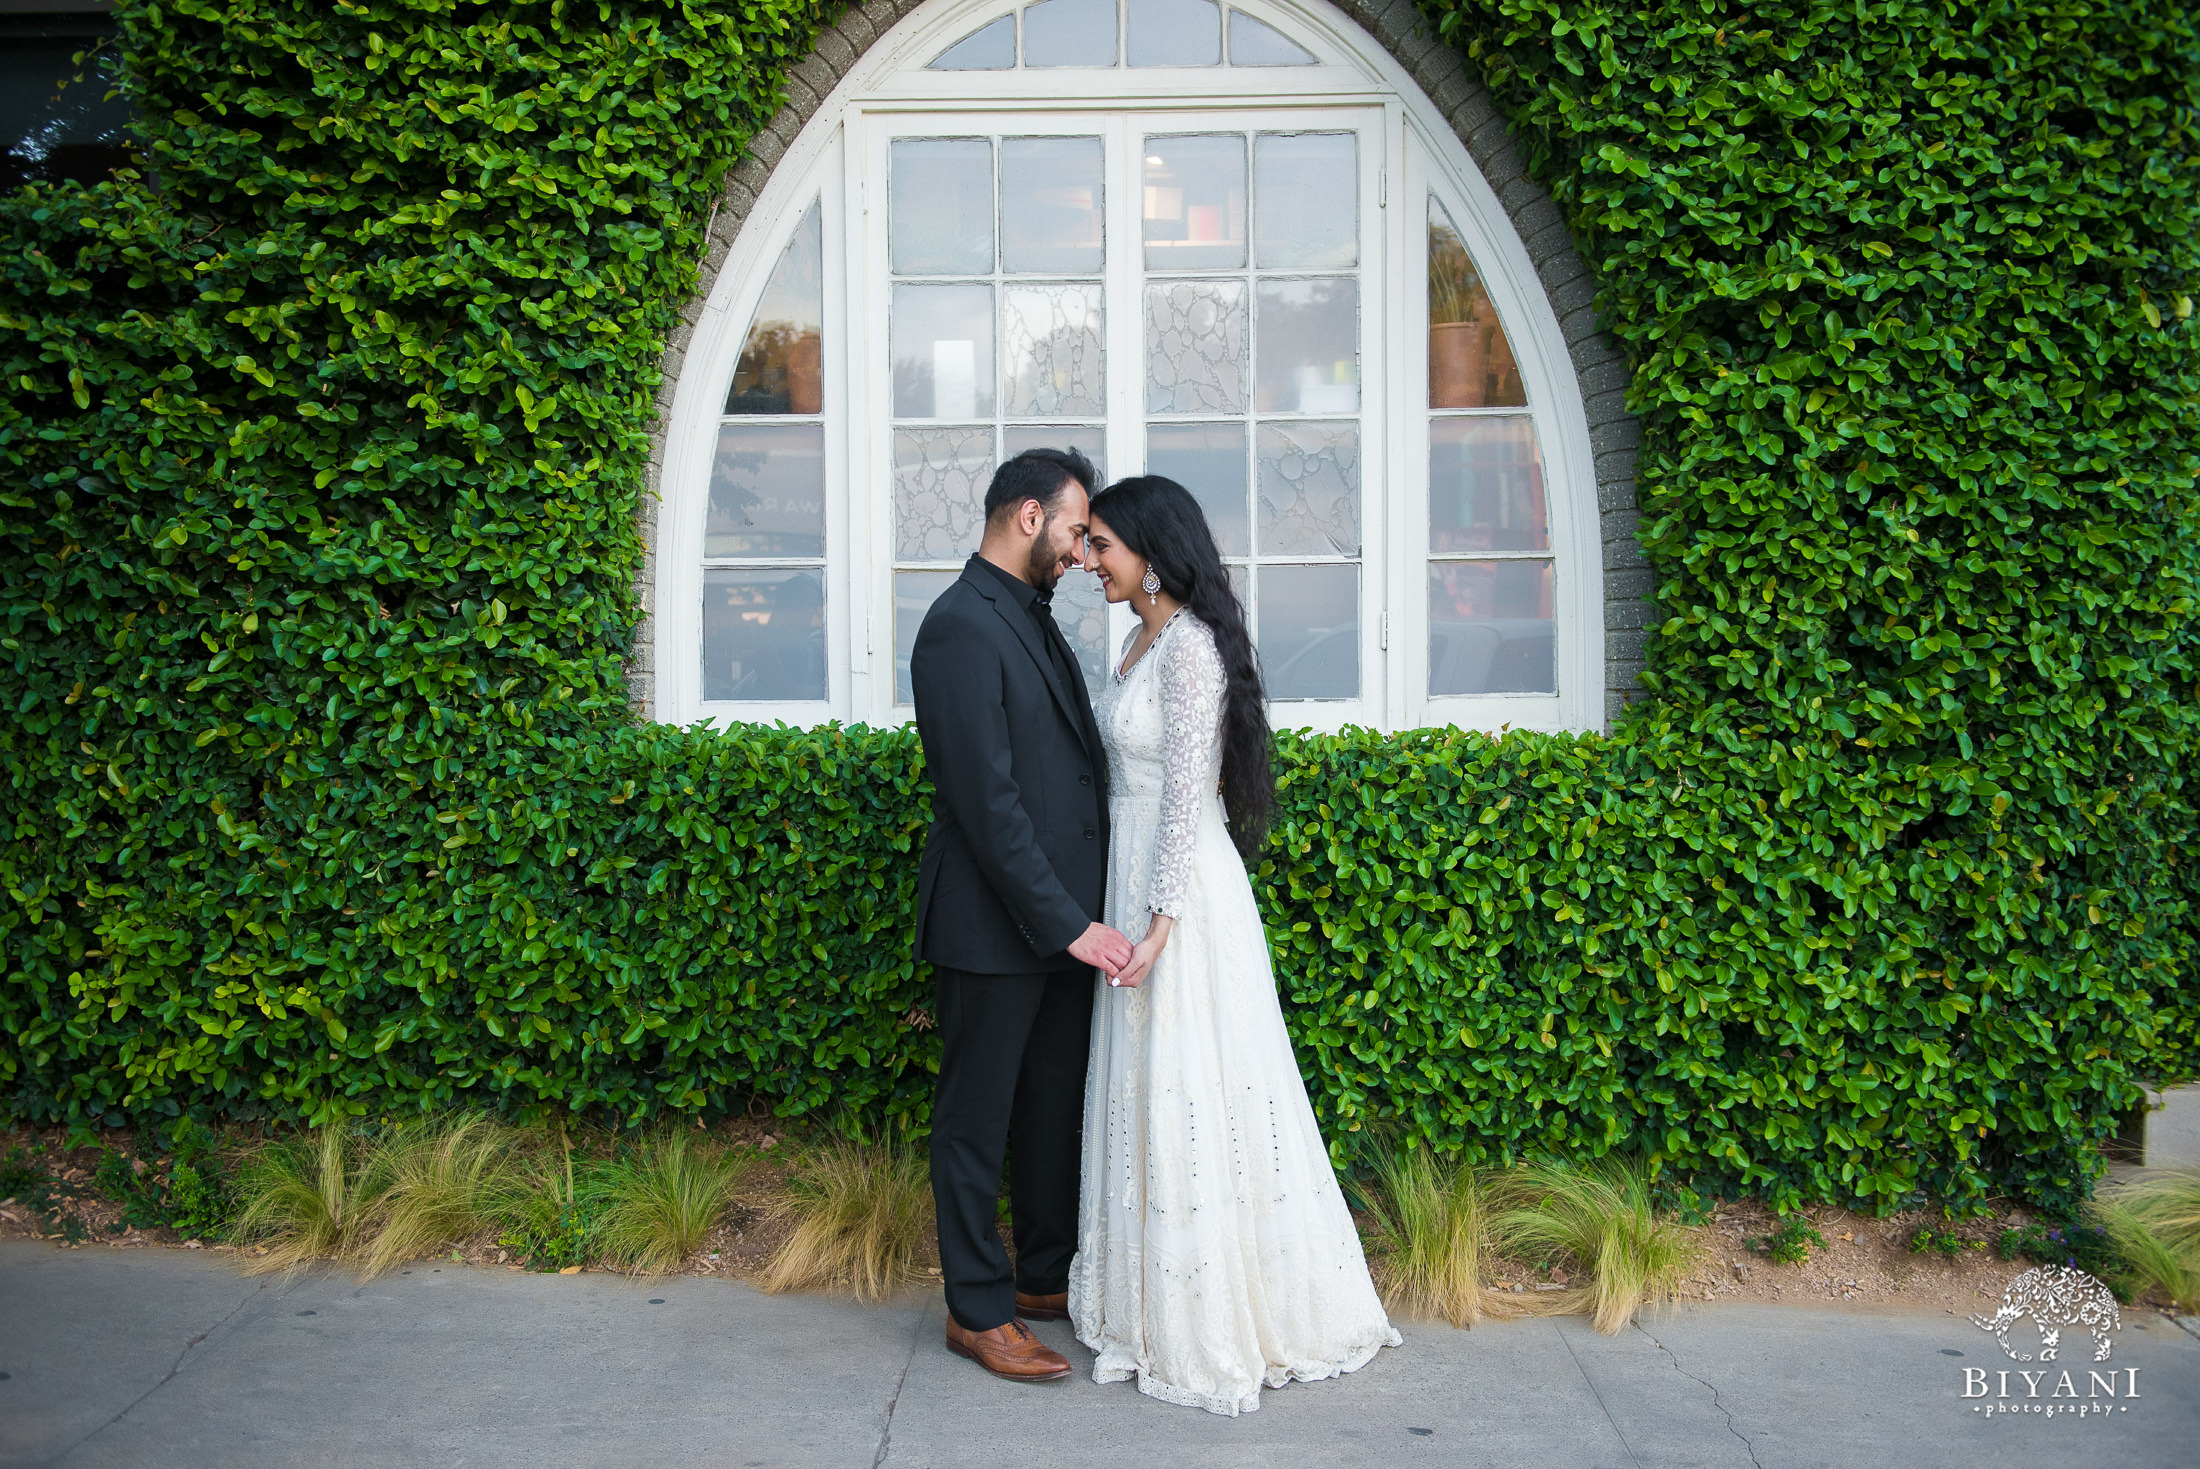 couple touching foreheads together in front of a vintage window with ivy growing around it